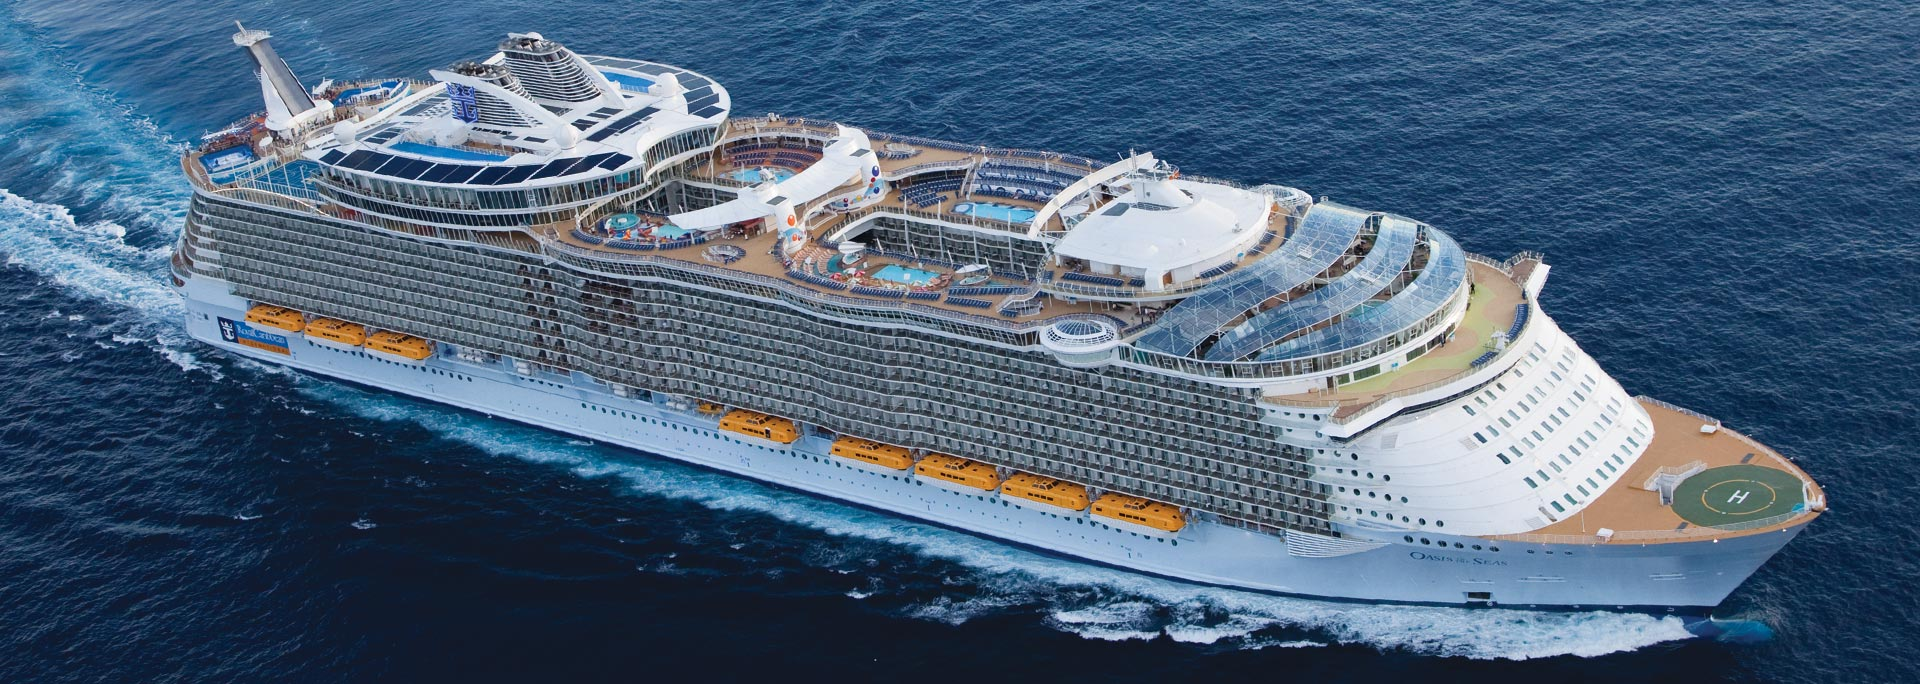 Oasis of the Seas. Foto: Royal Caribbean